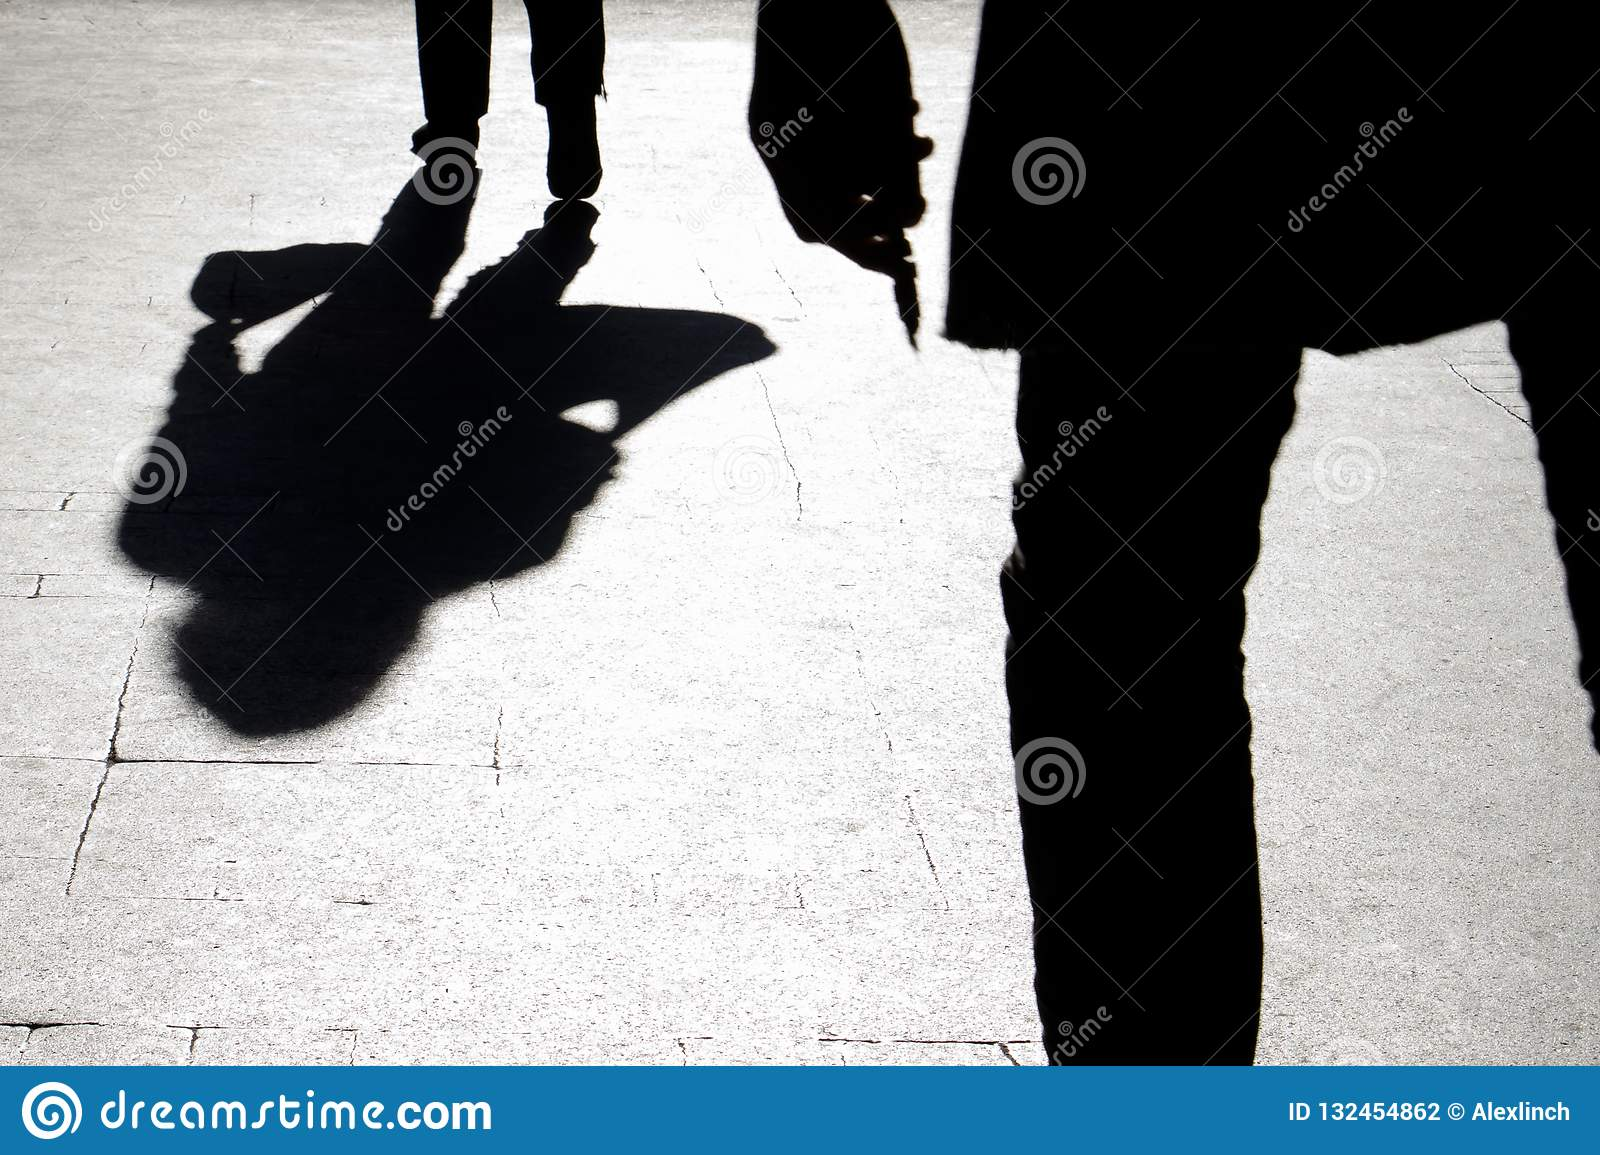 Blurry silhouette and shadow of a woman carrying a bag and a man